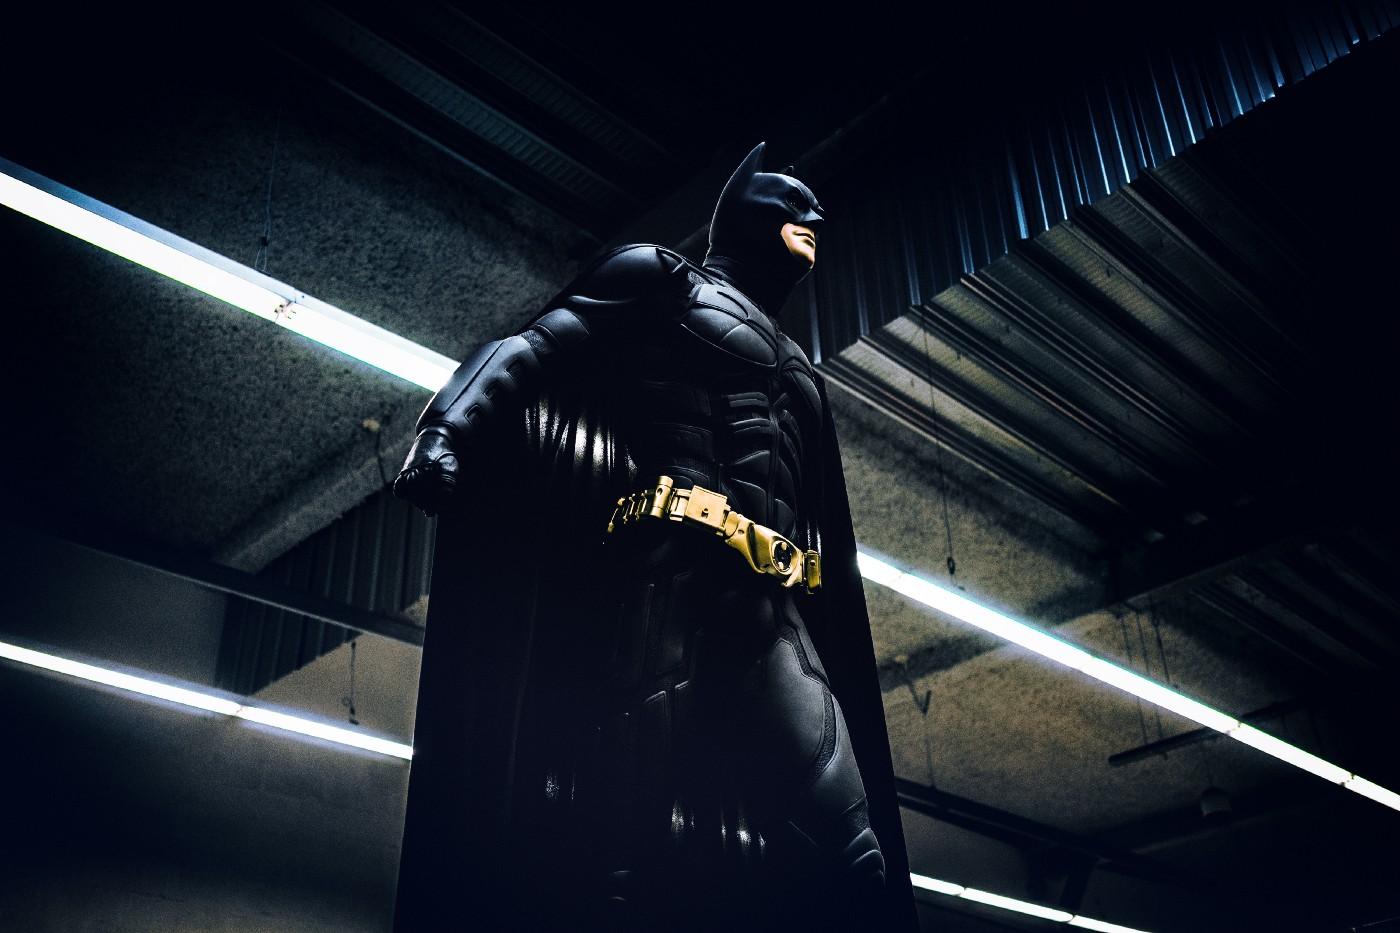 Batman from the older movies